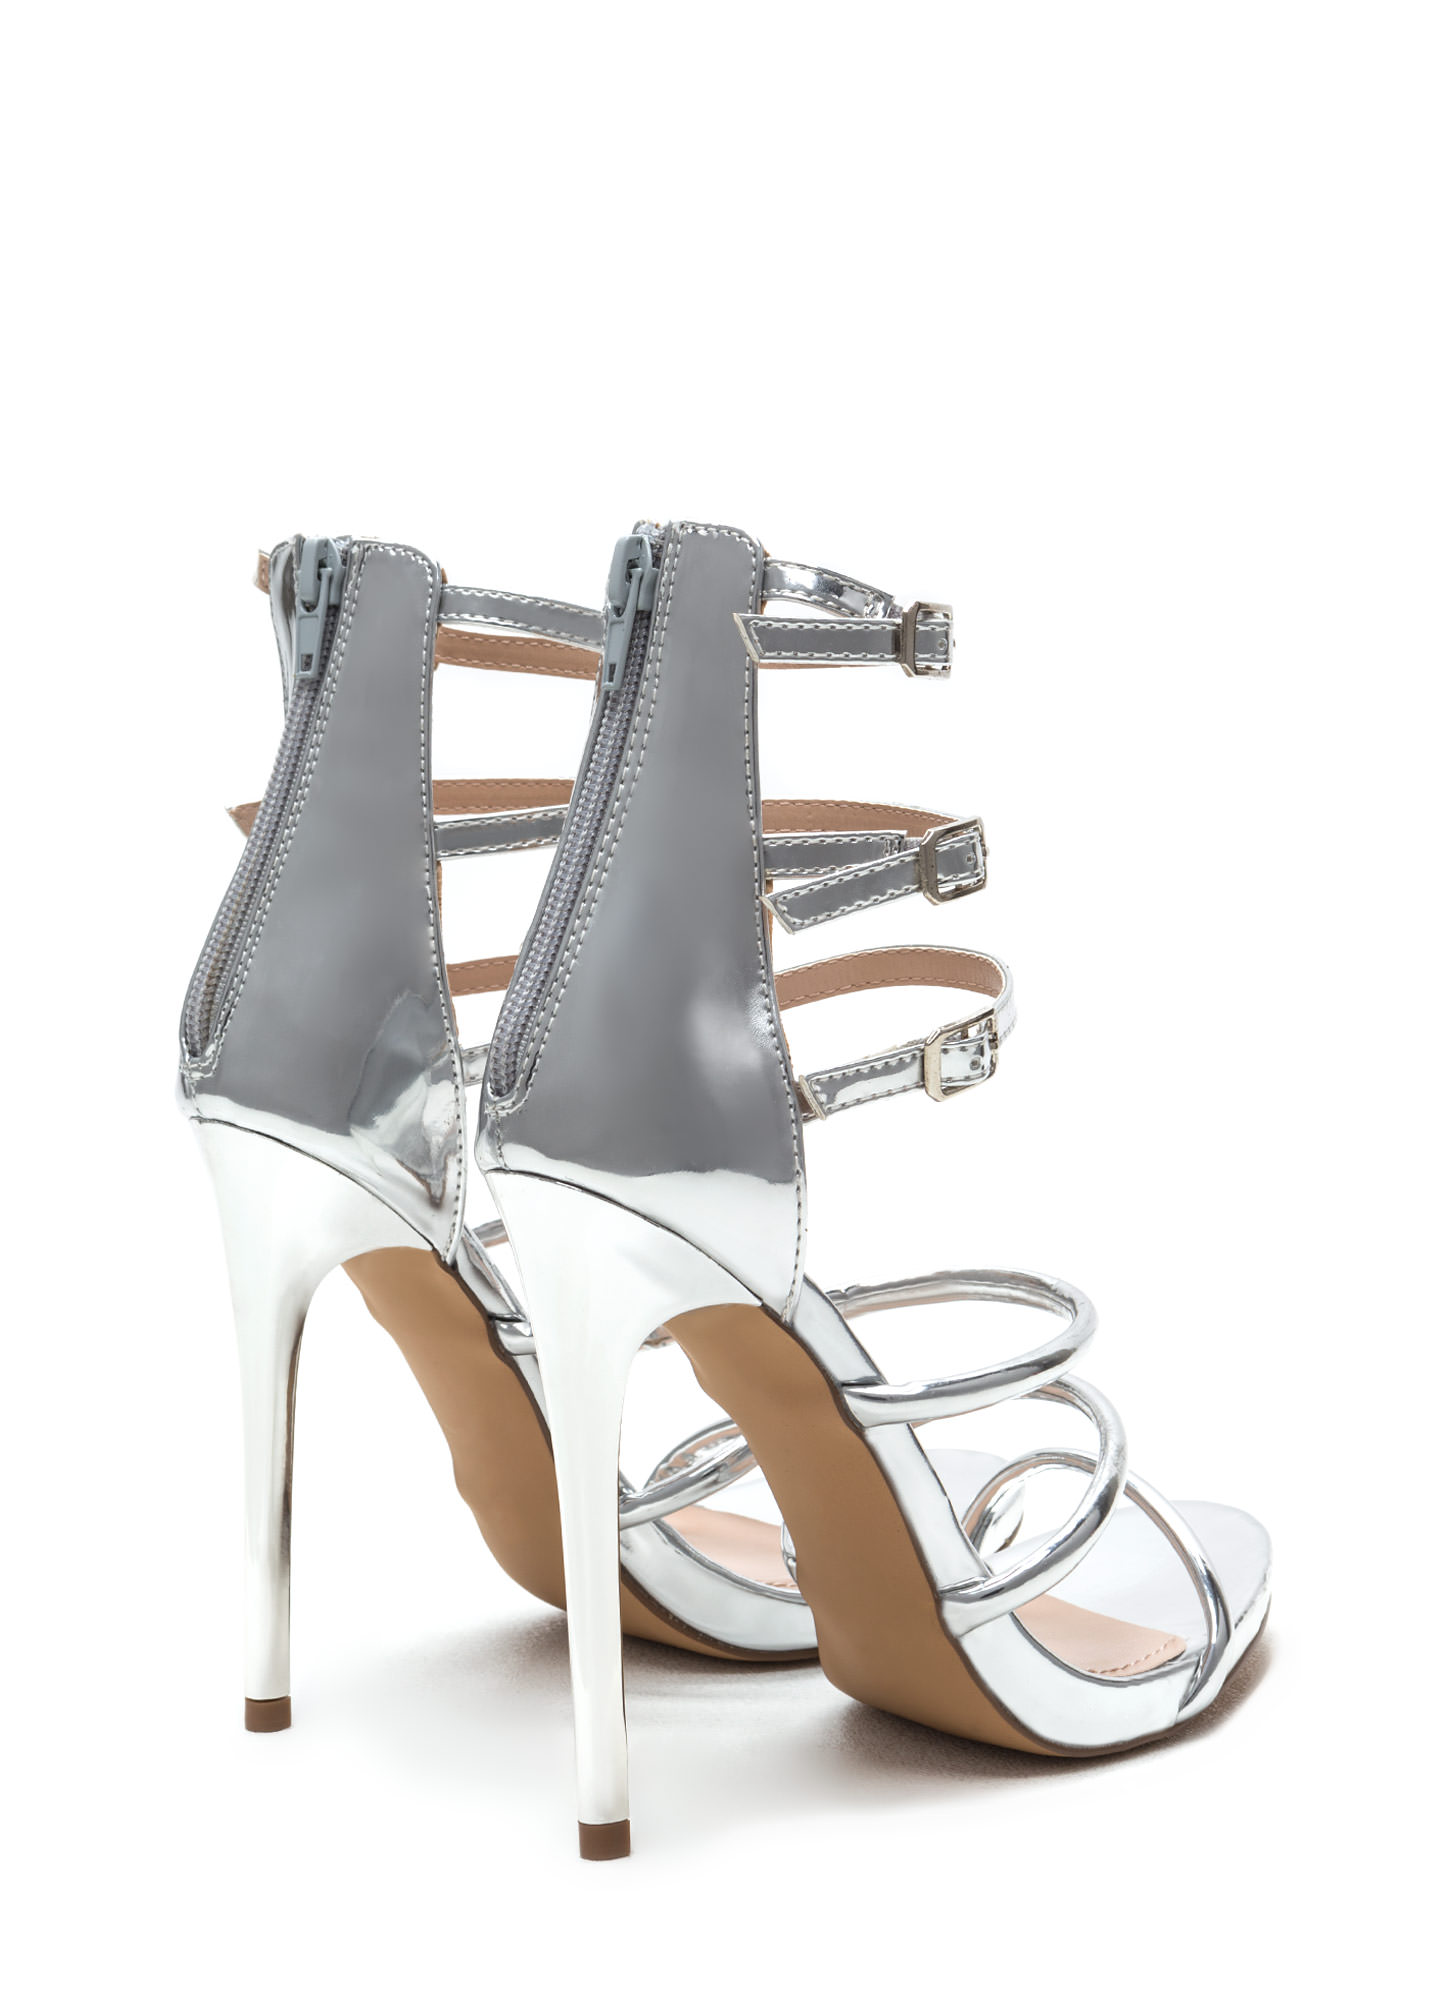 Six 'N Match Caged Metallic Heels SILVER